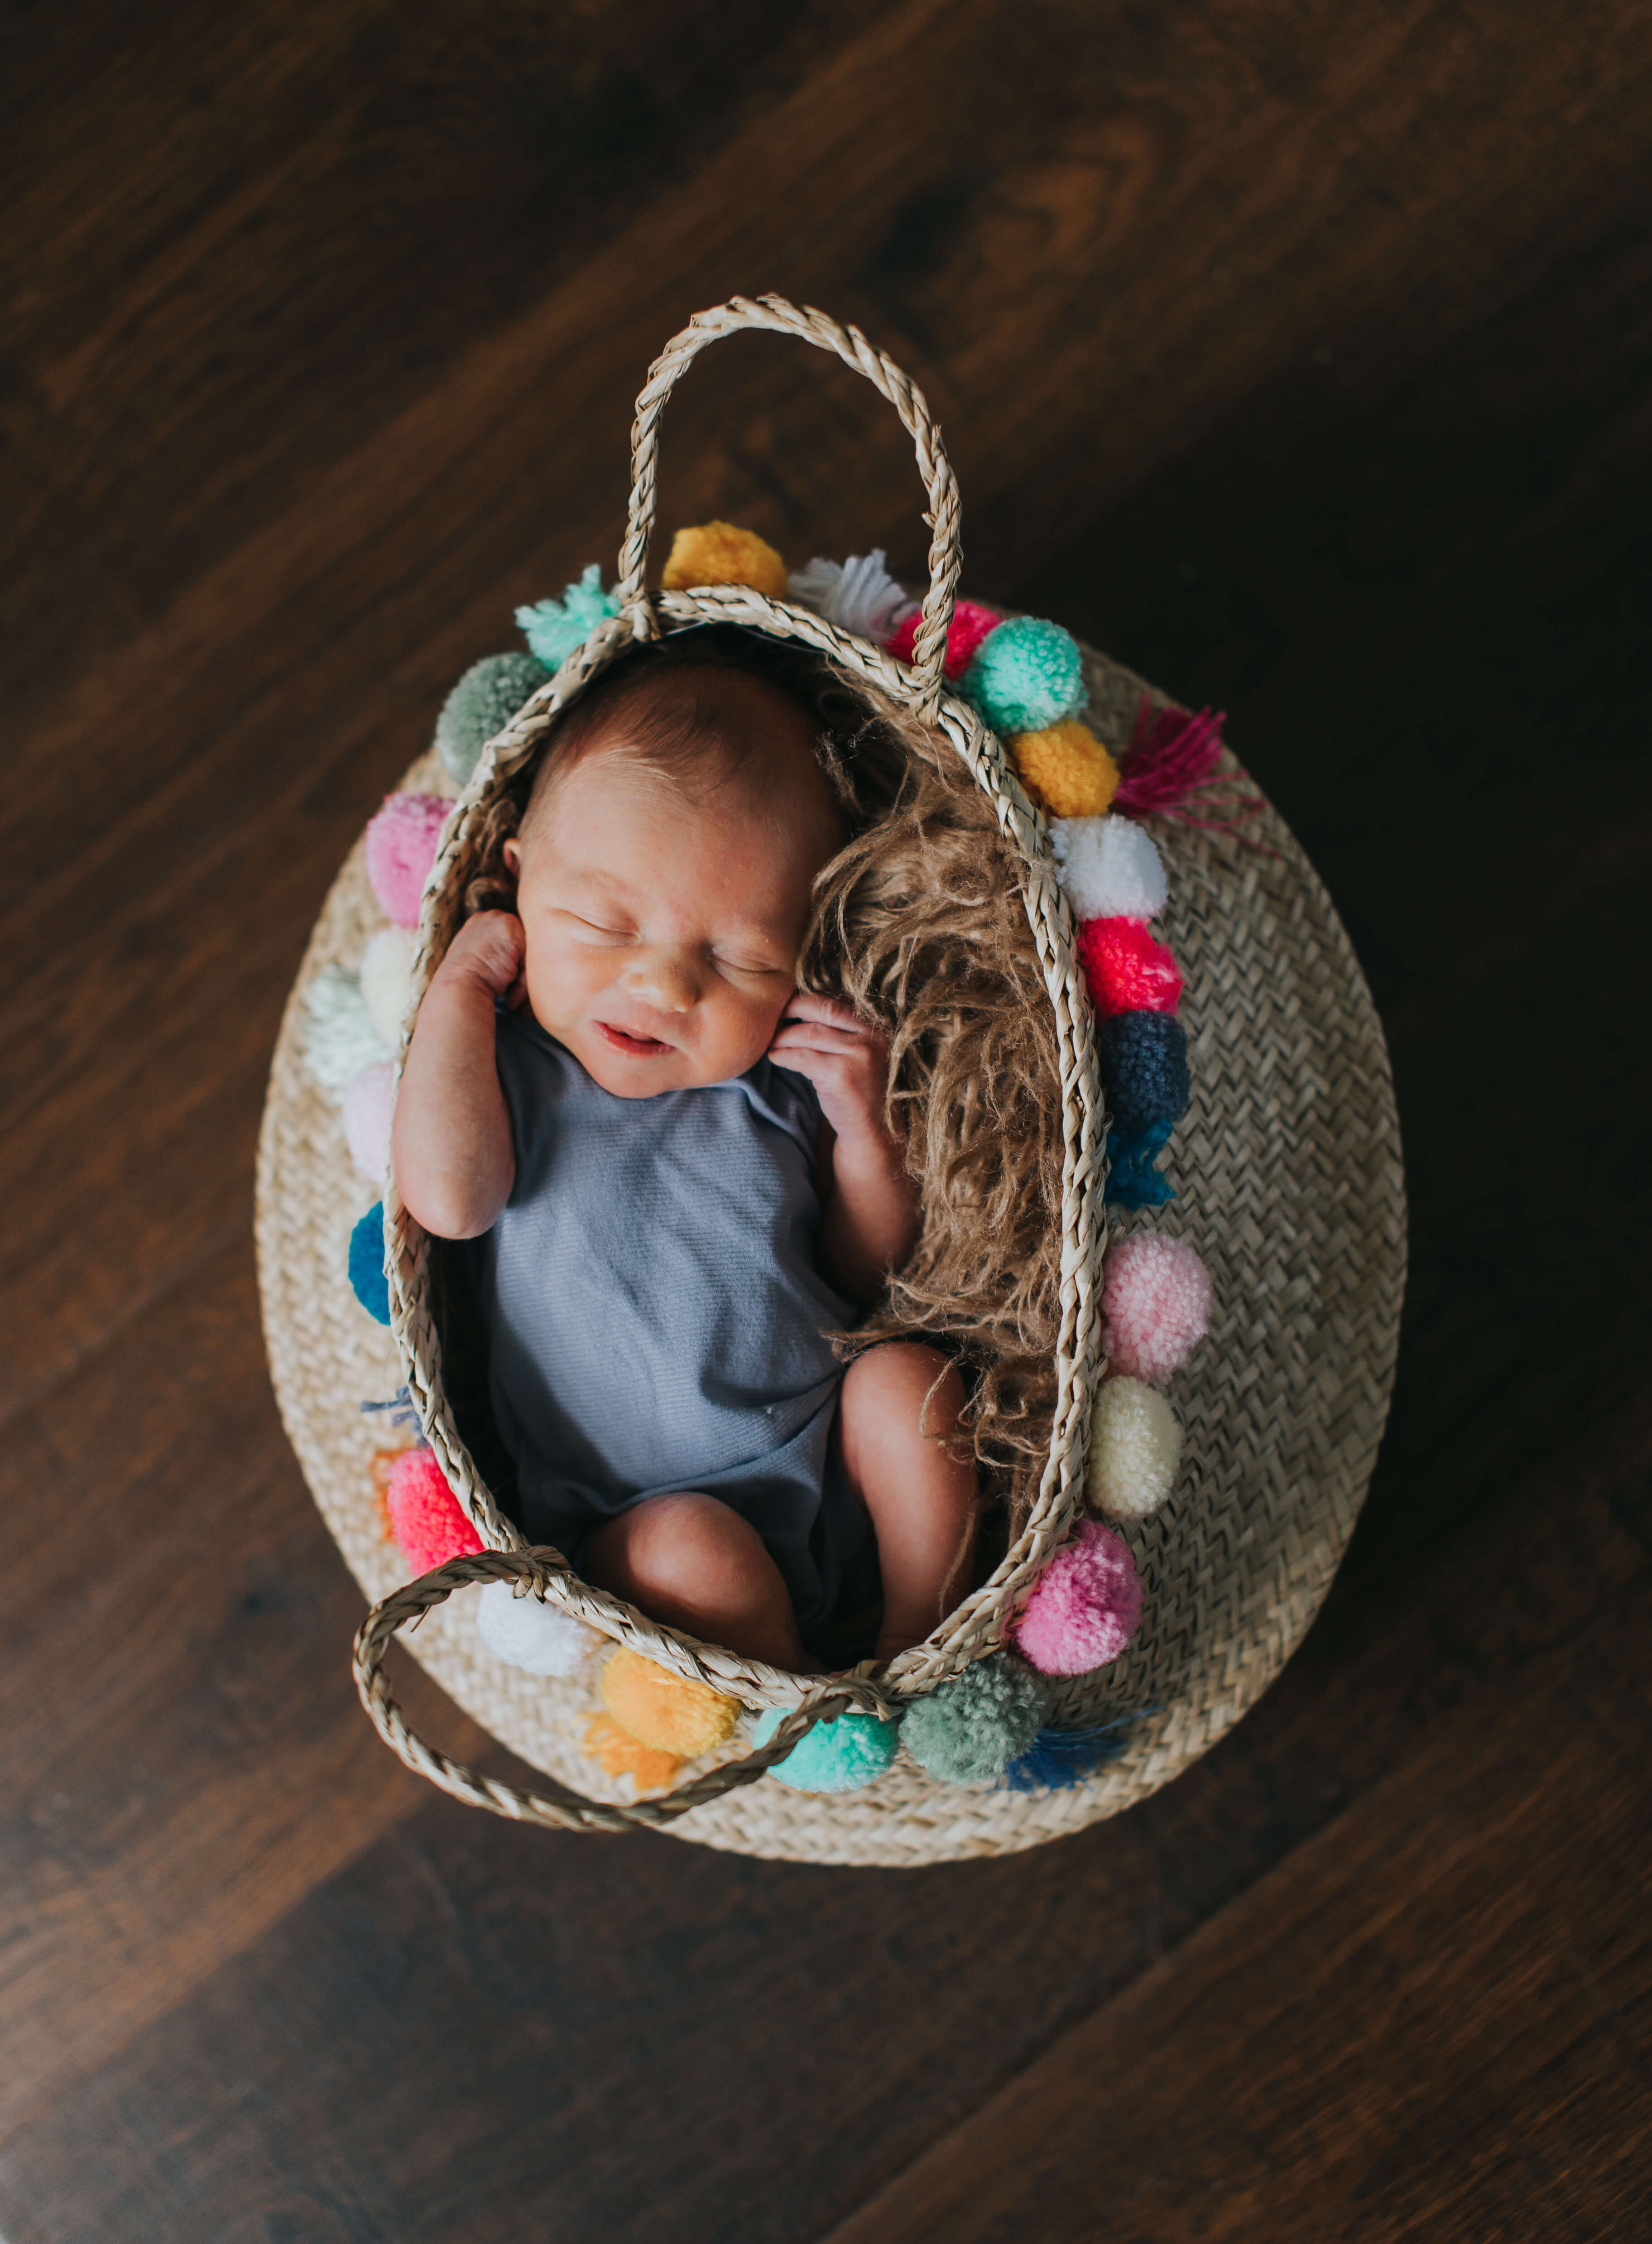 newborn photography okc - maternity photography okc